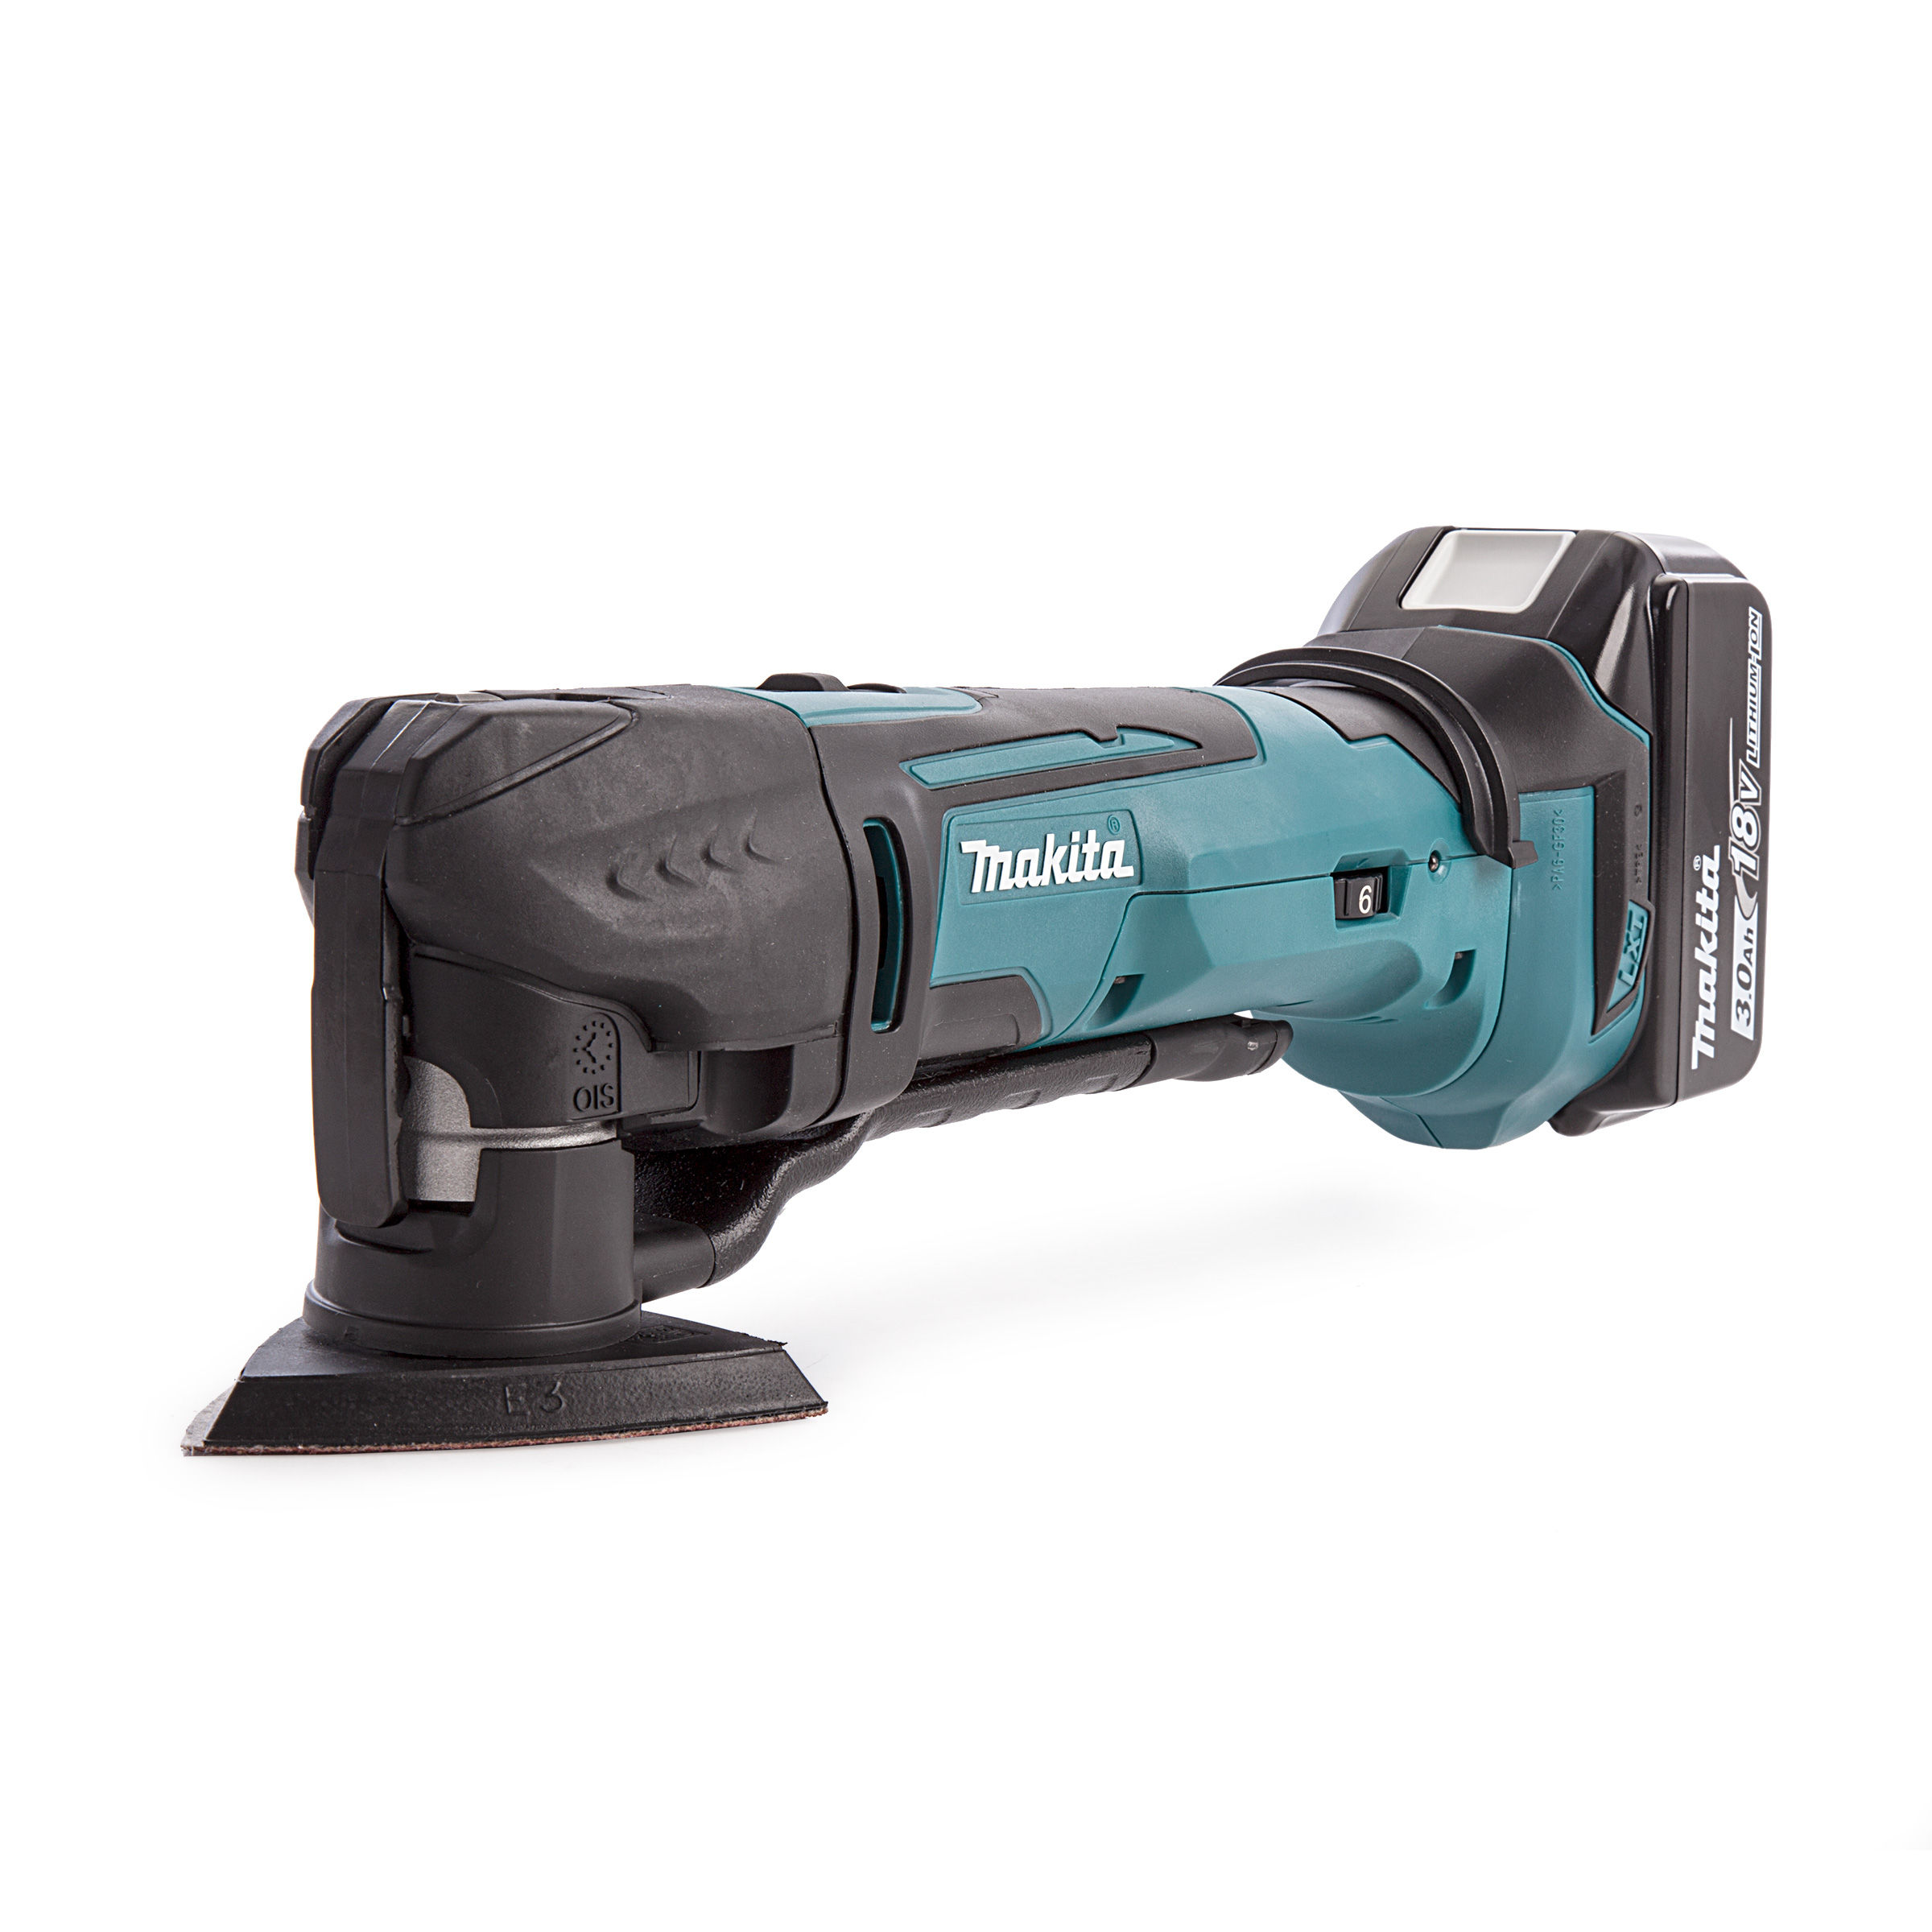 toolstop makita dtm51 18v multi-tool with dc18rc charger in makpac